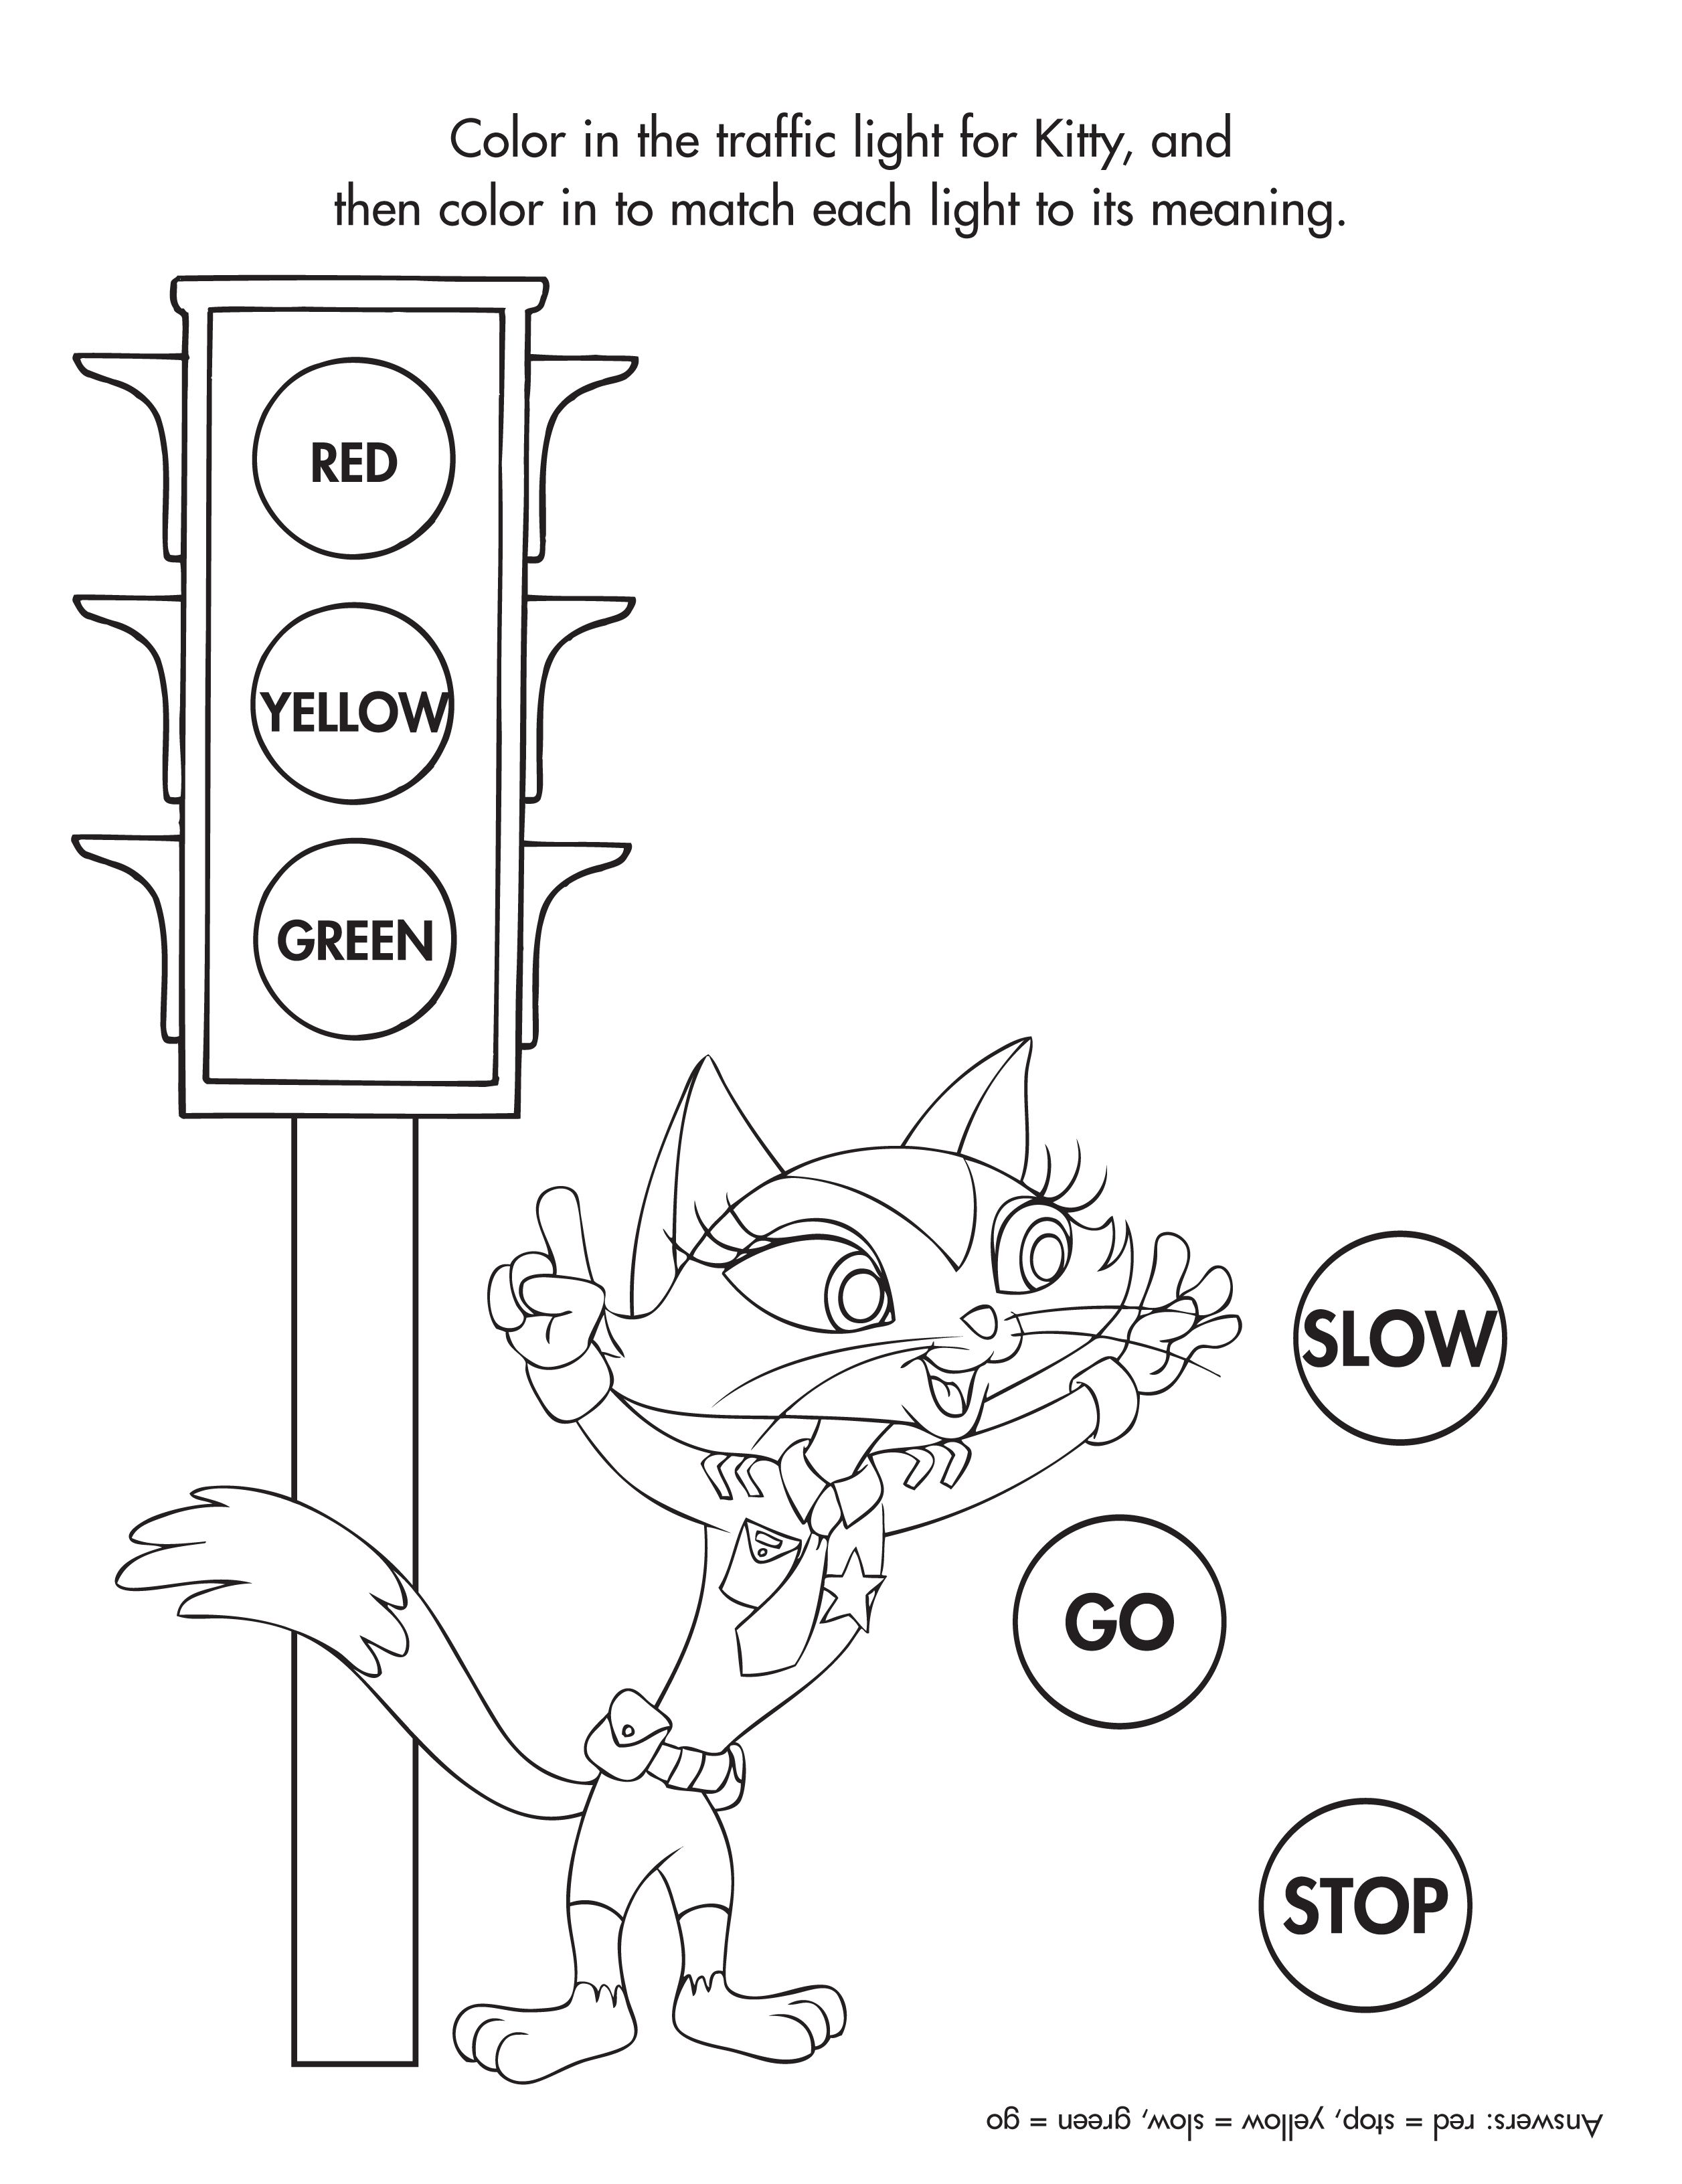 Help Ranger Kitty Determine The Correct Traffic Lights